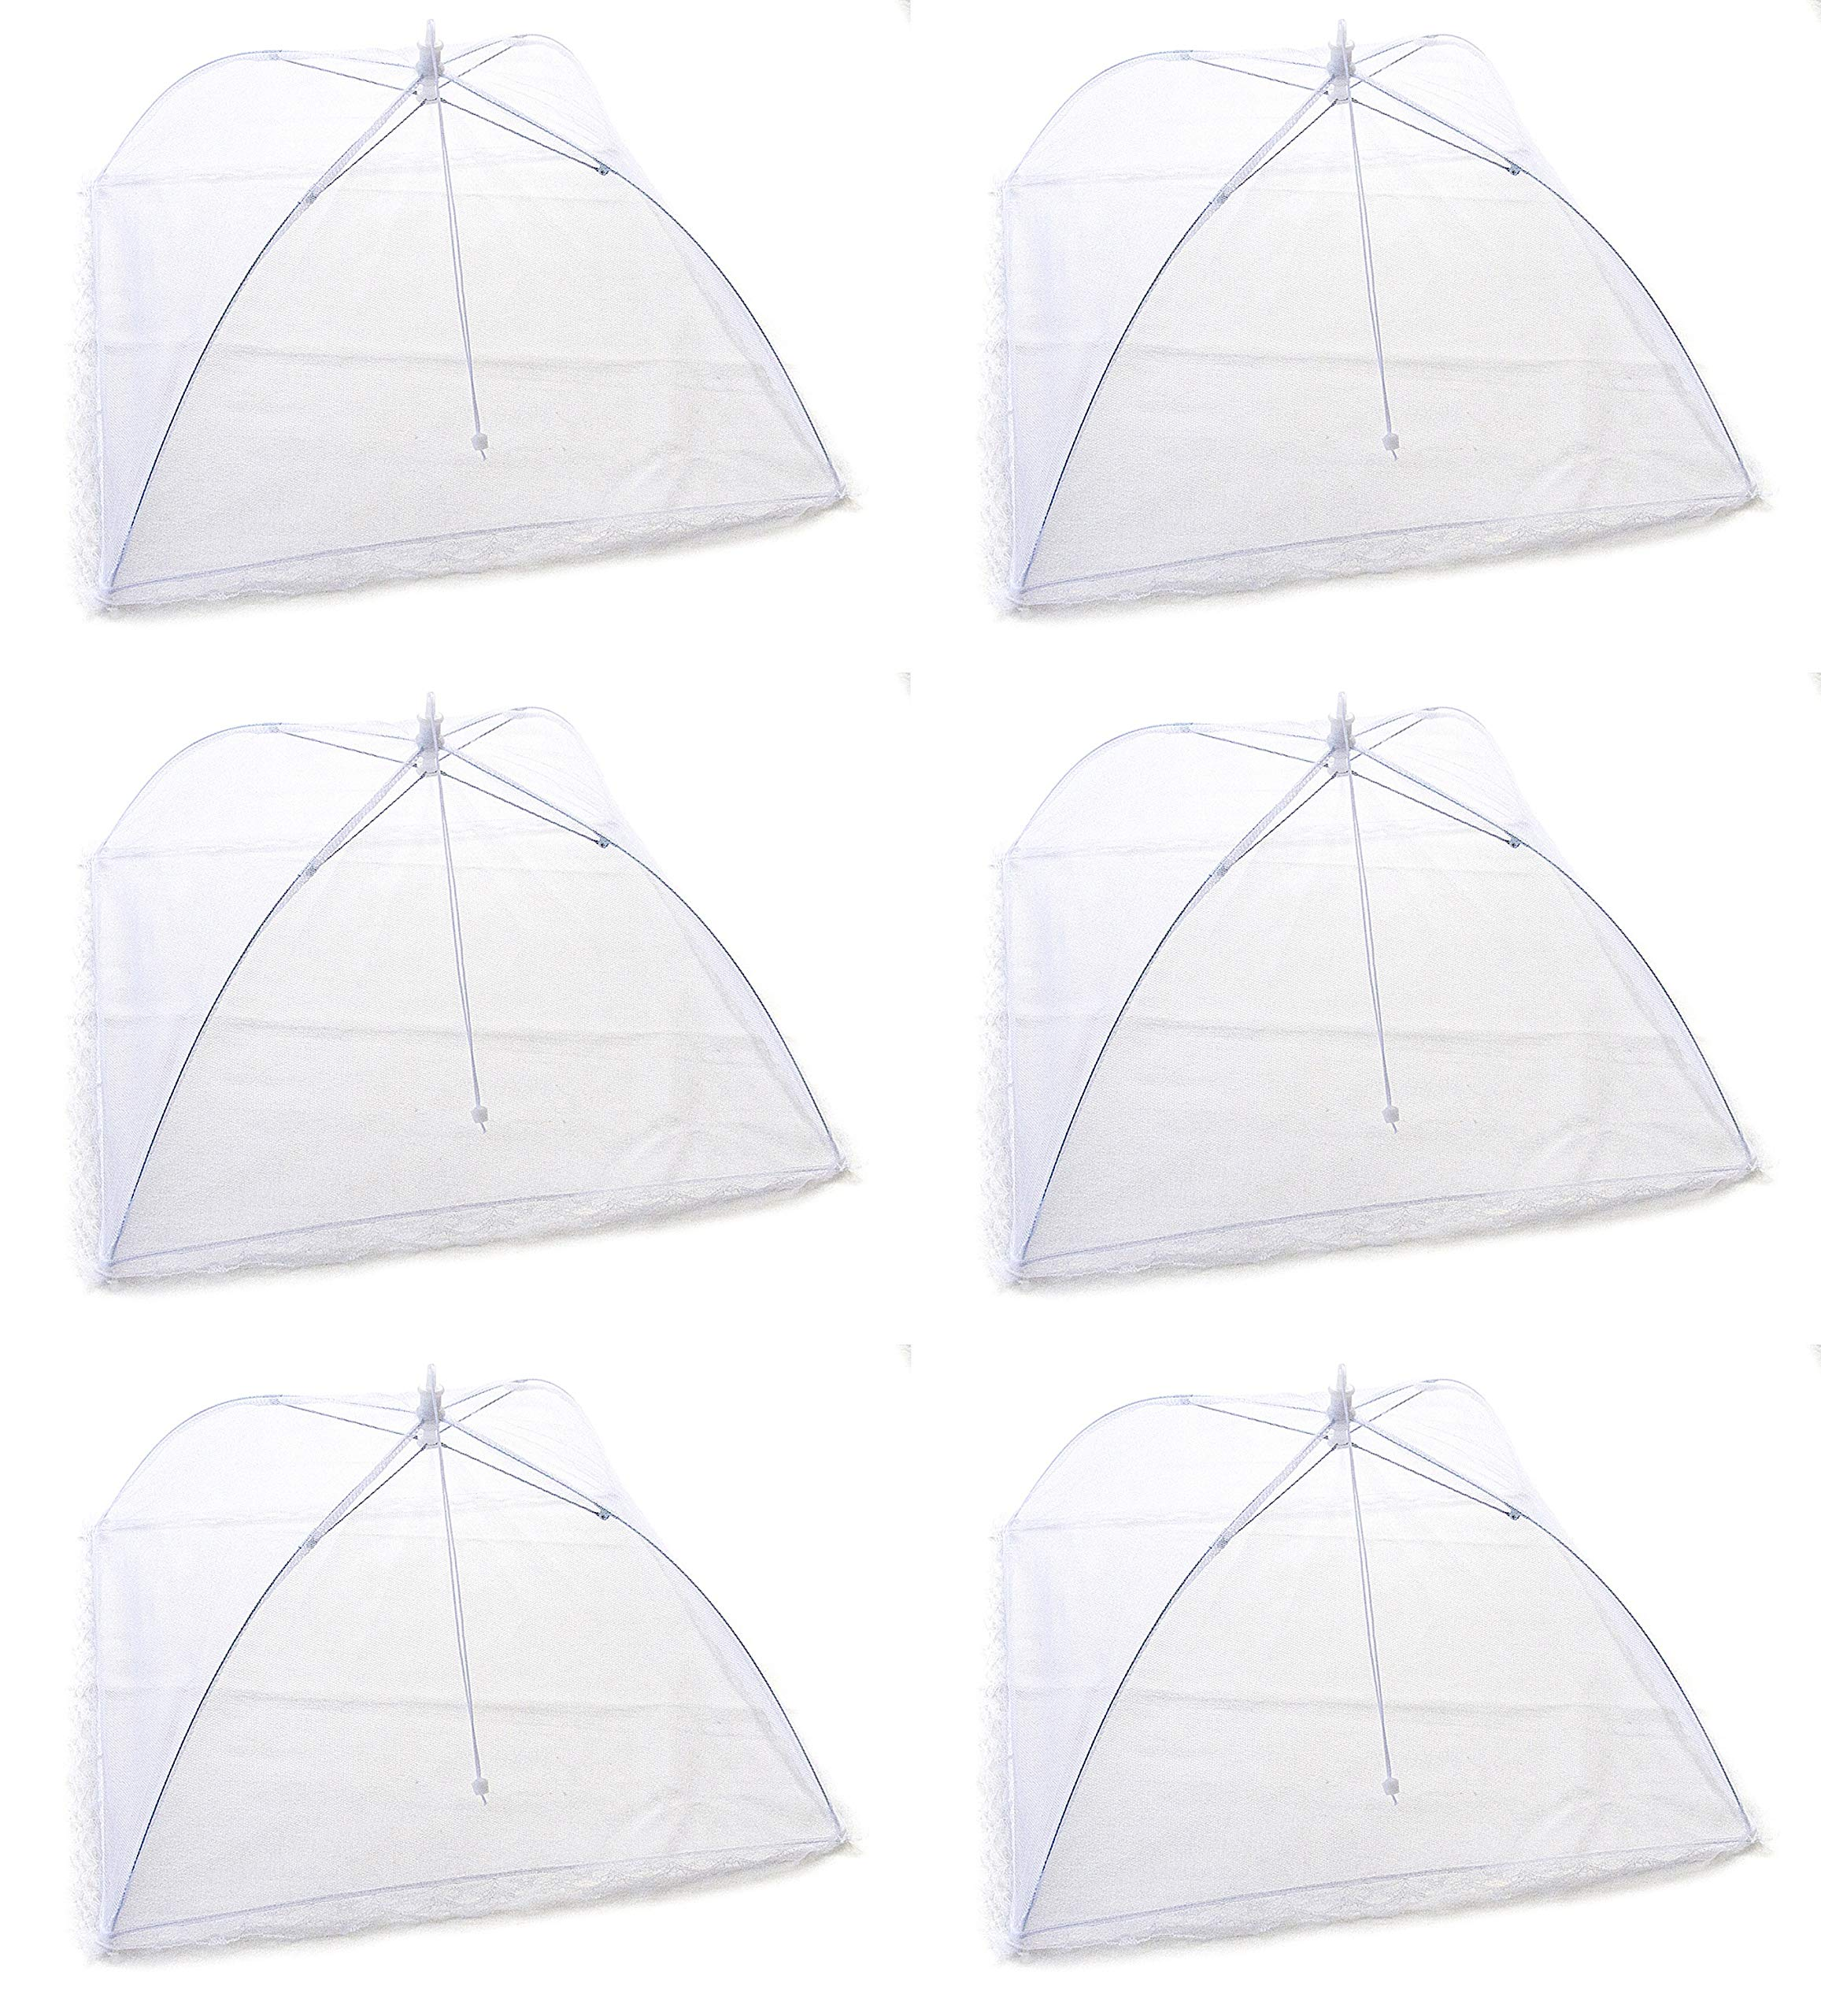 Six Pack of Large Collapsible Reusable Mesh Screen Food Tent Pop-up Umbrella Covers for Picnics, BBQ, Indoor and Outdoor Parties. Keep Flies, Mosquitoes, Bugs Away From Your Food.